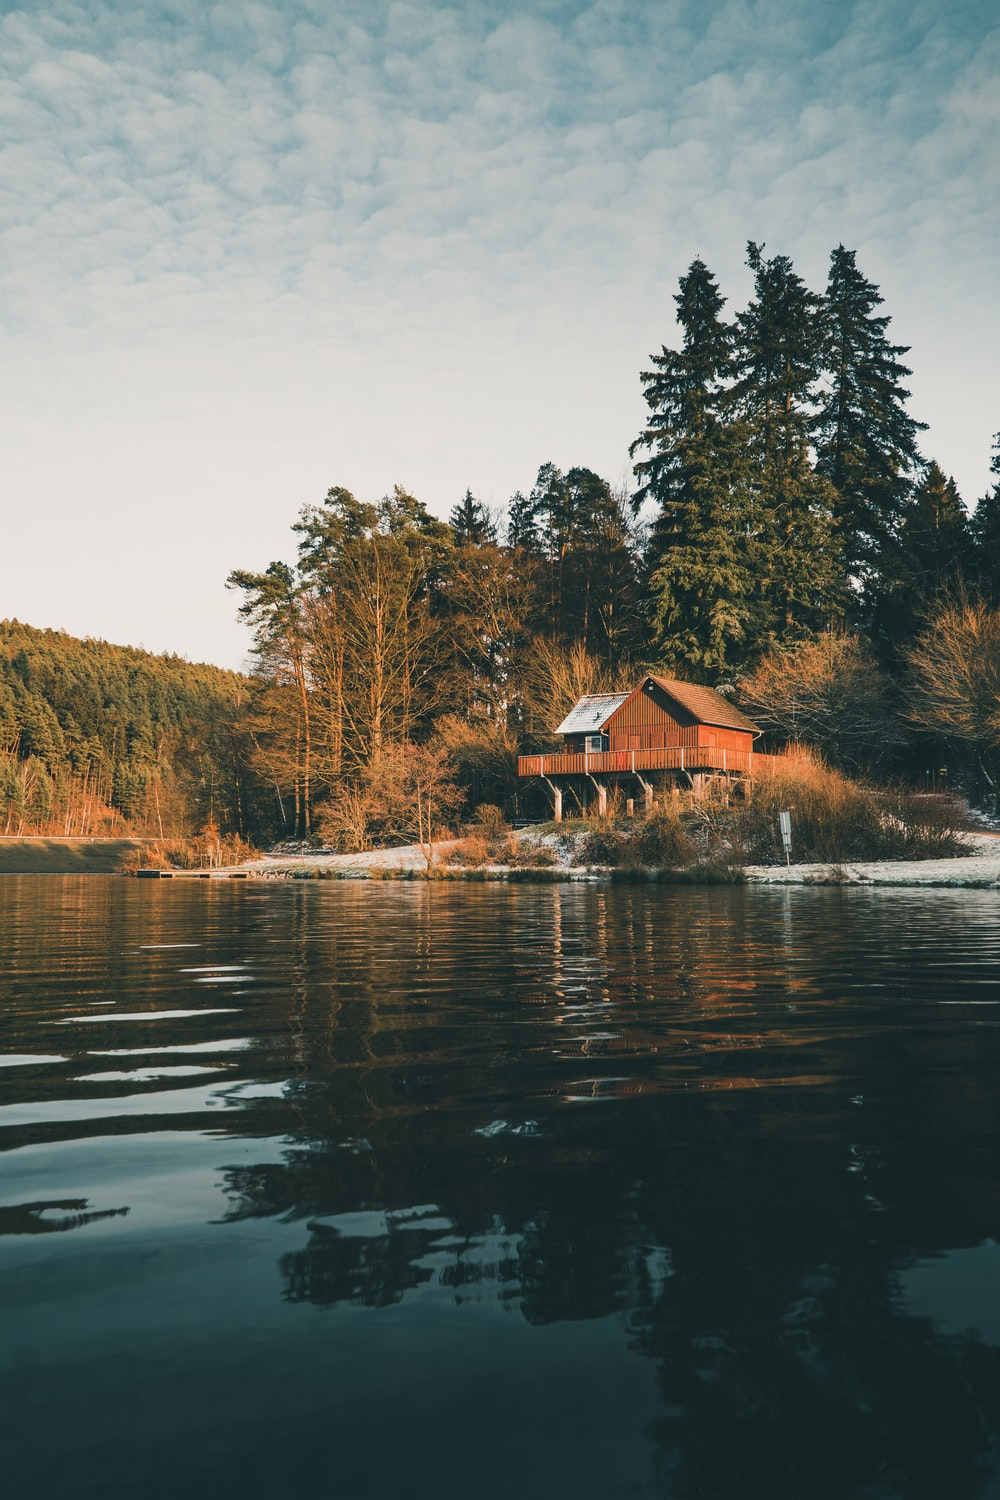 brown wooden house near lake surrounded by trees during daytime